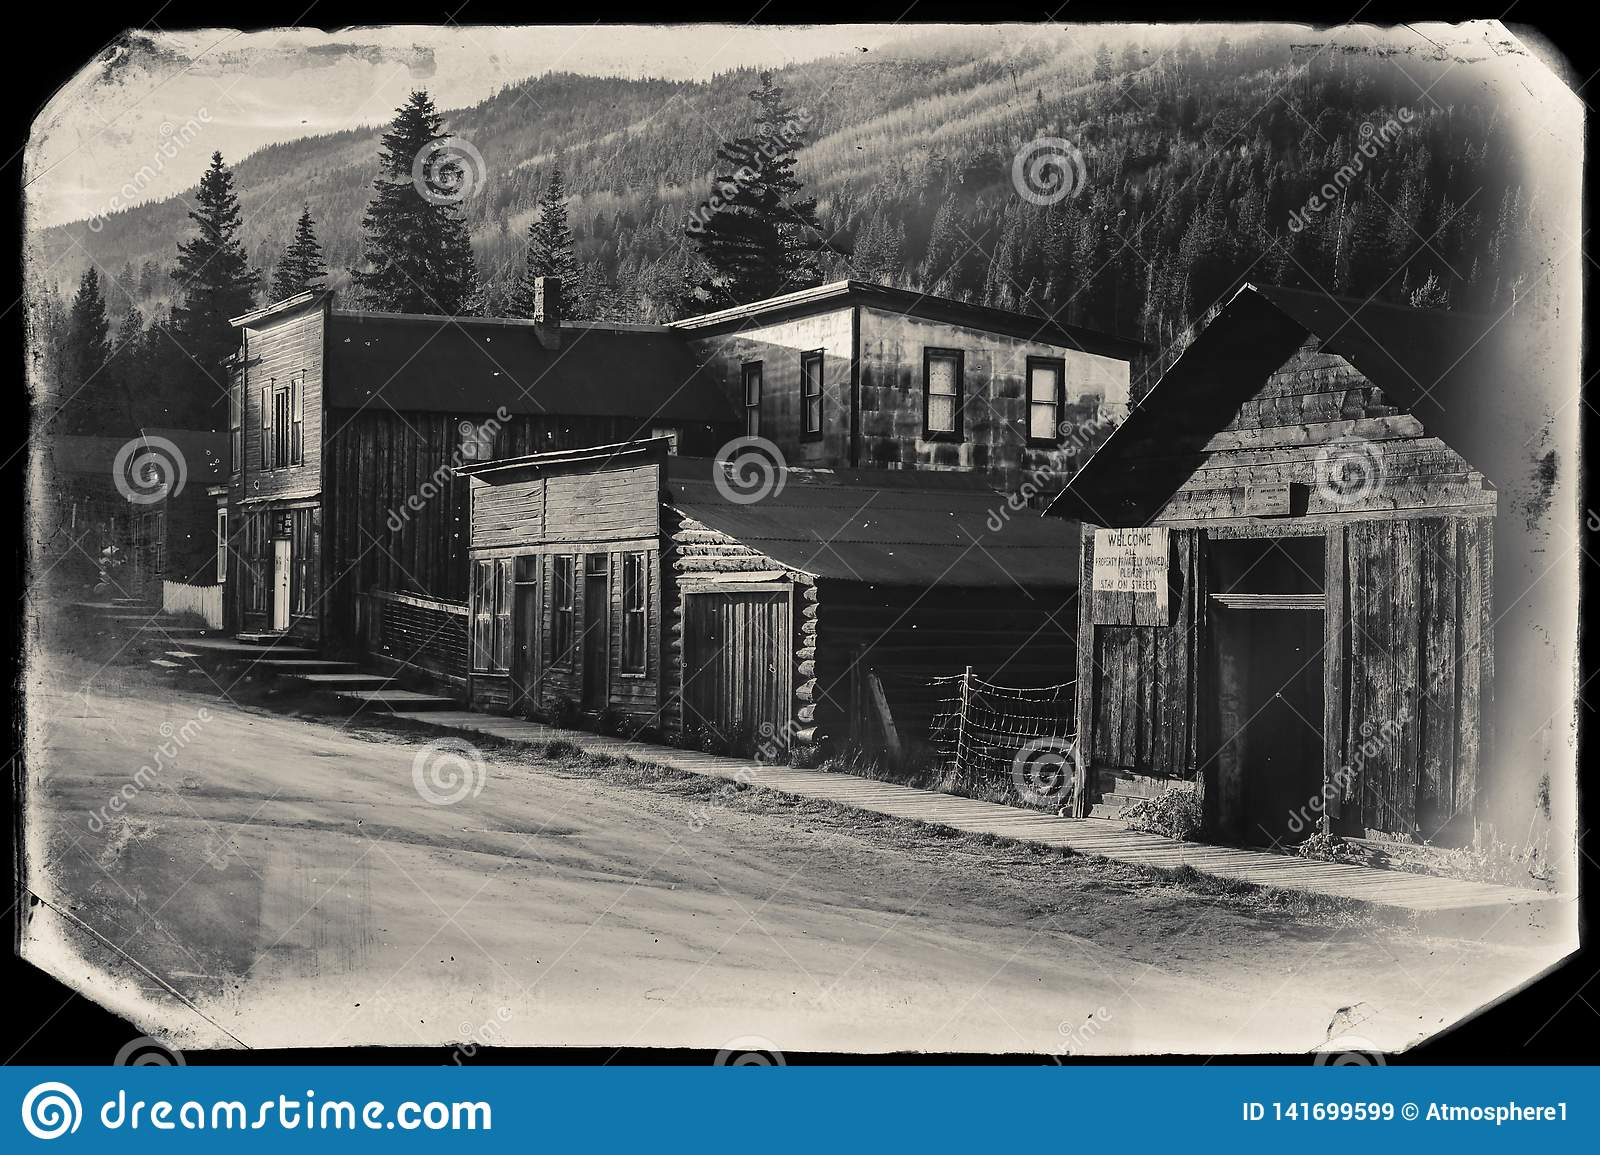 Black and White Sepia Vintage Photo of Old Western Wooden Buildings in St. Elmo Gold Mine Ghost Town in Colorado